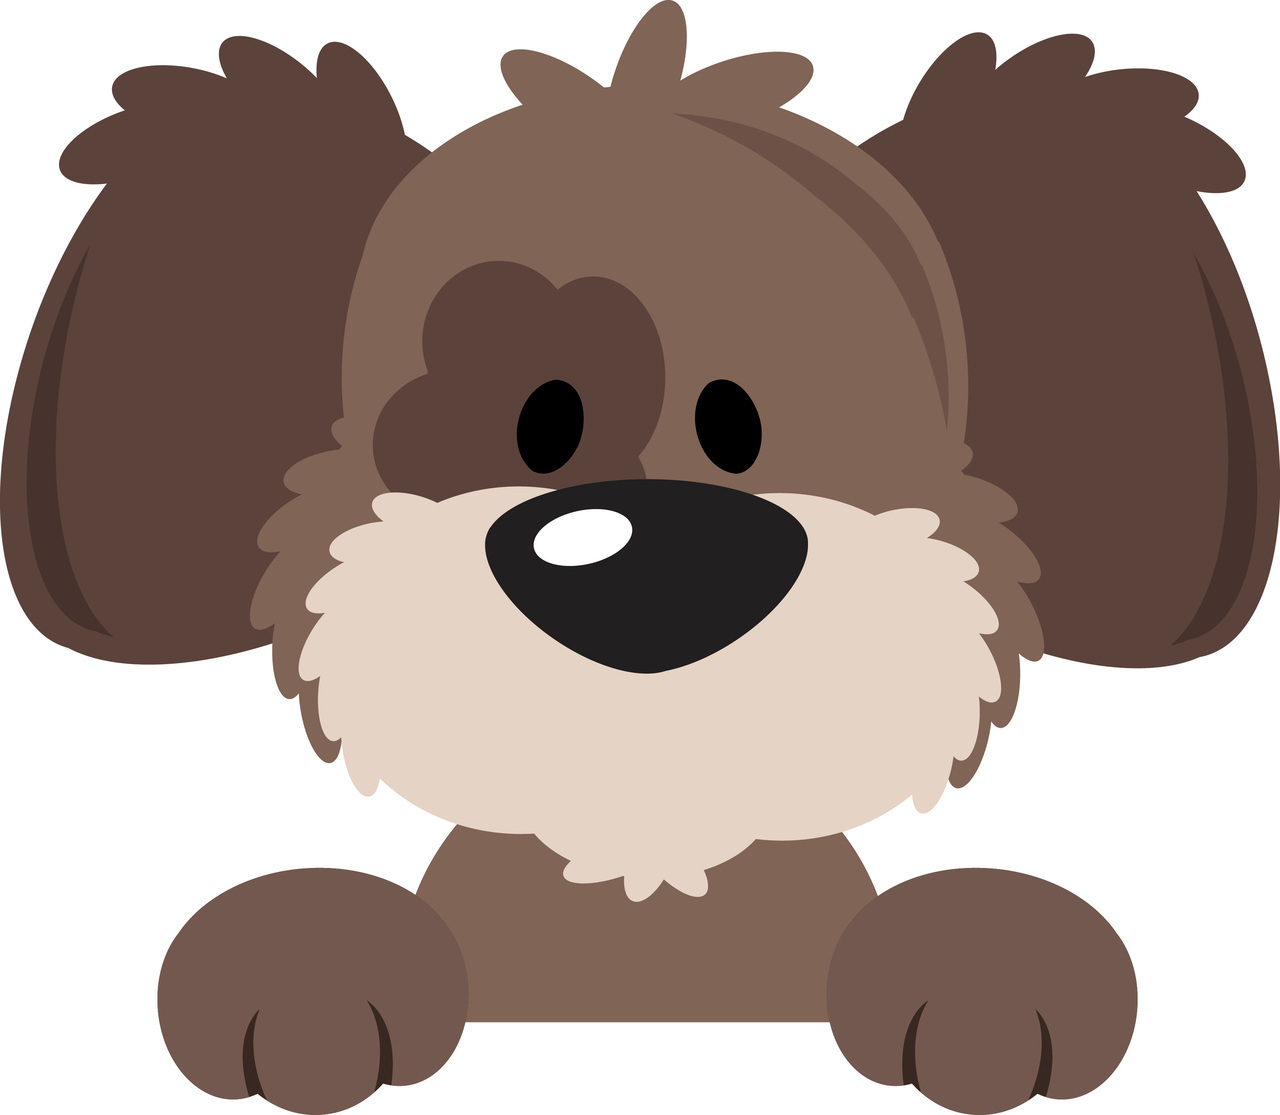 Baby dog clipart vector svg library library Dog Vector Clipart | Free download best Dog Vector Clipart on ... svg library library